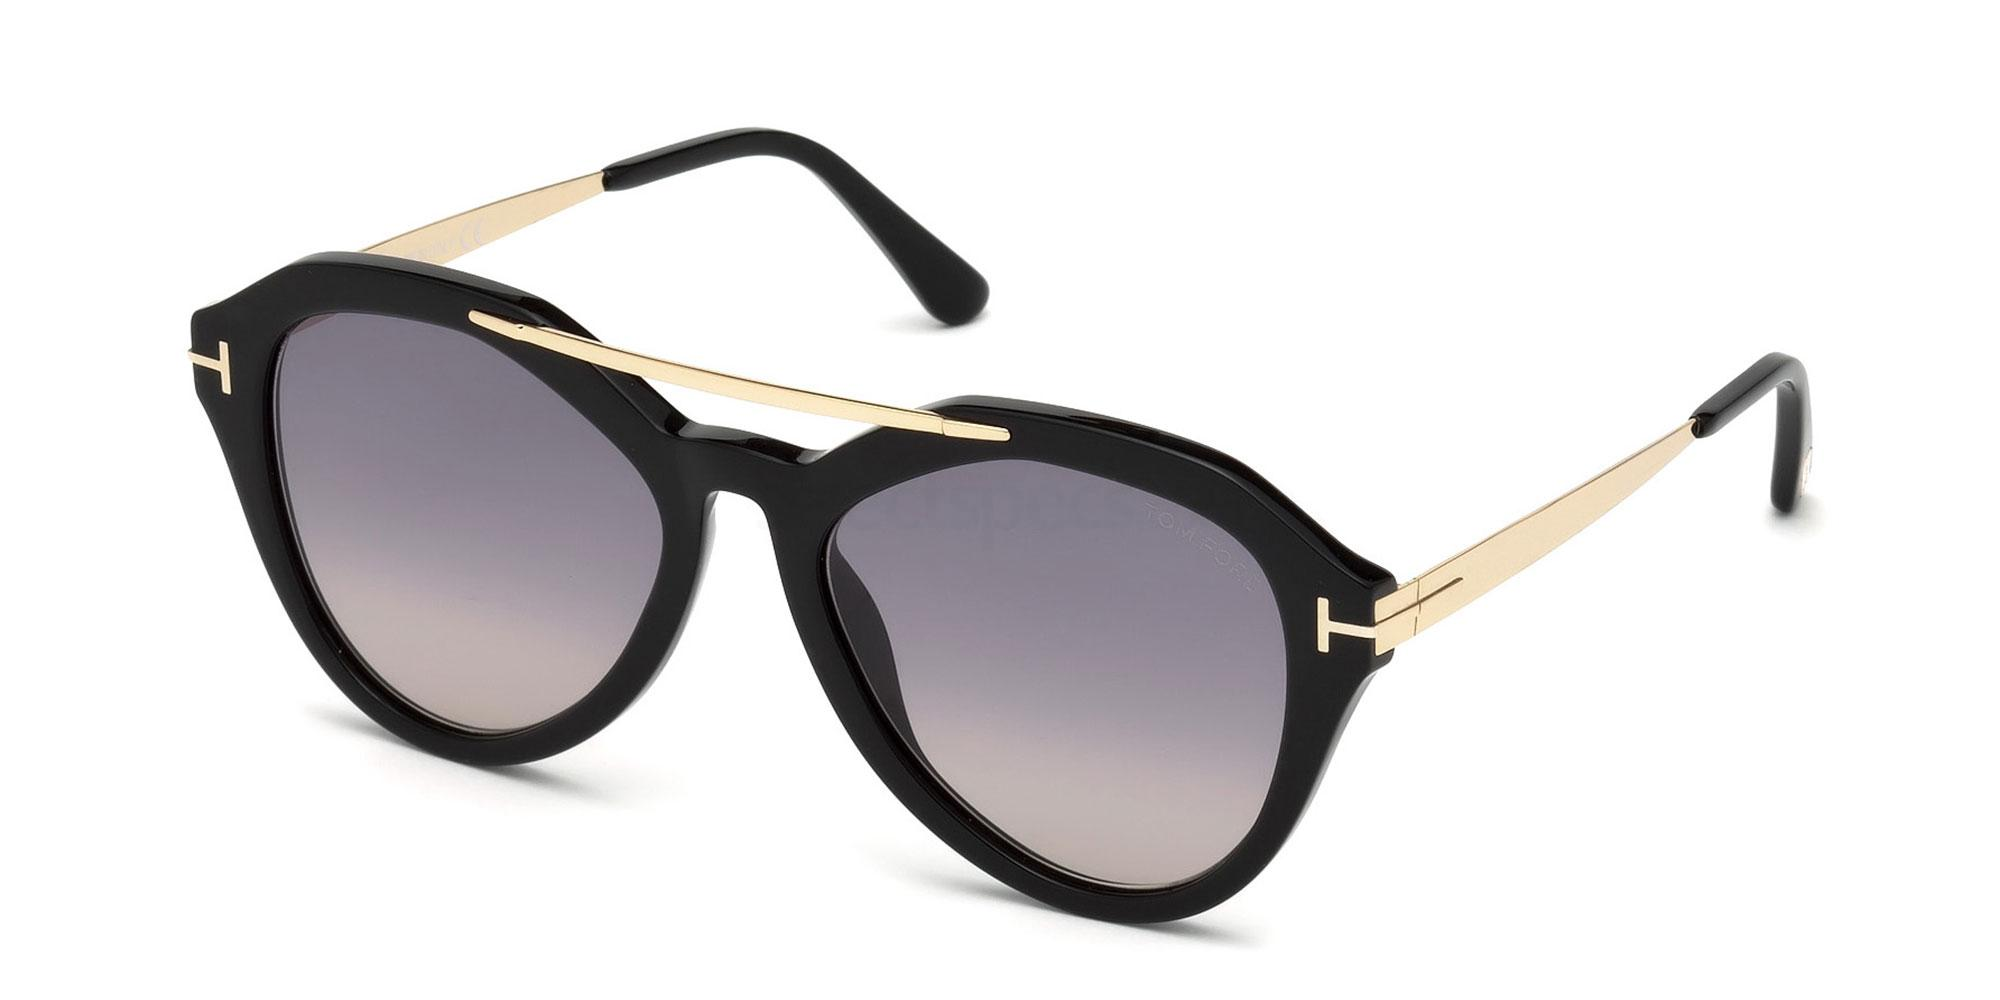 01B FT0576 Sunglasses, Tom Ford